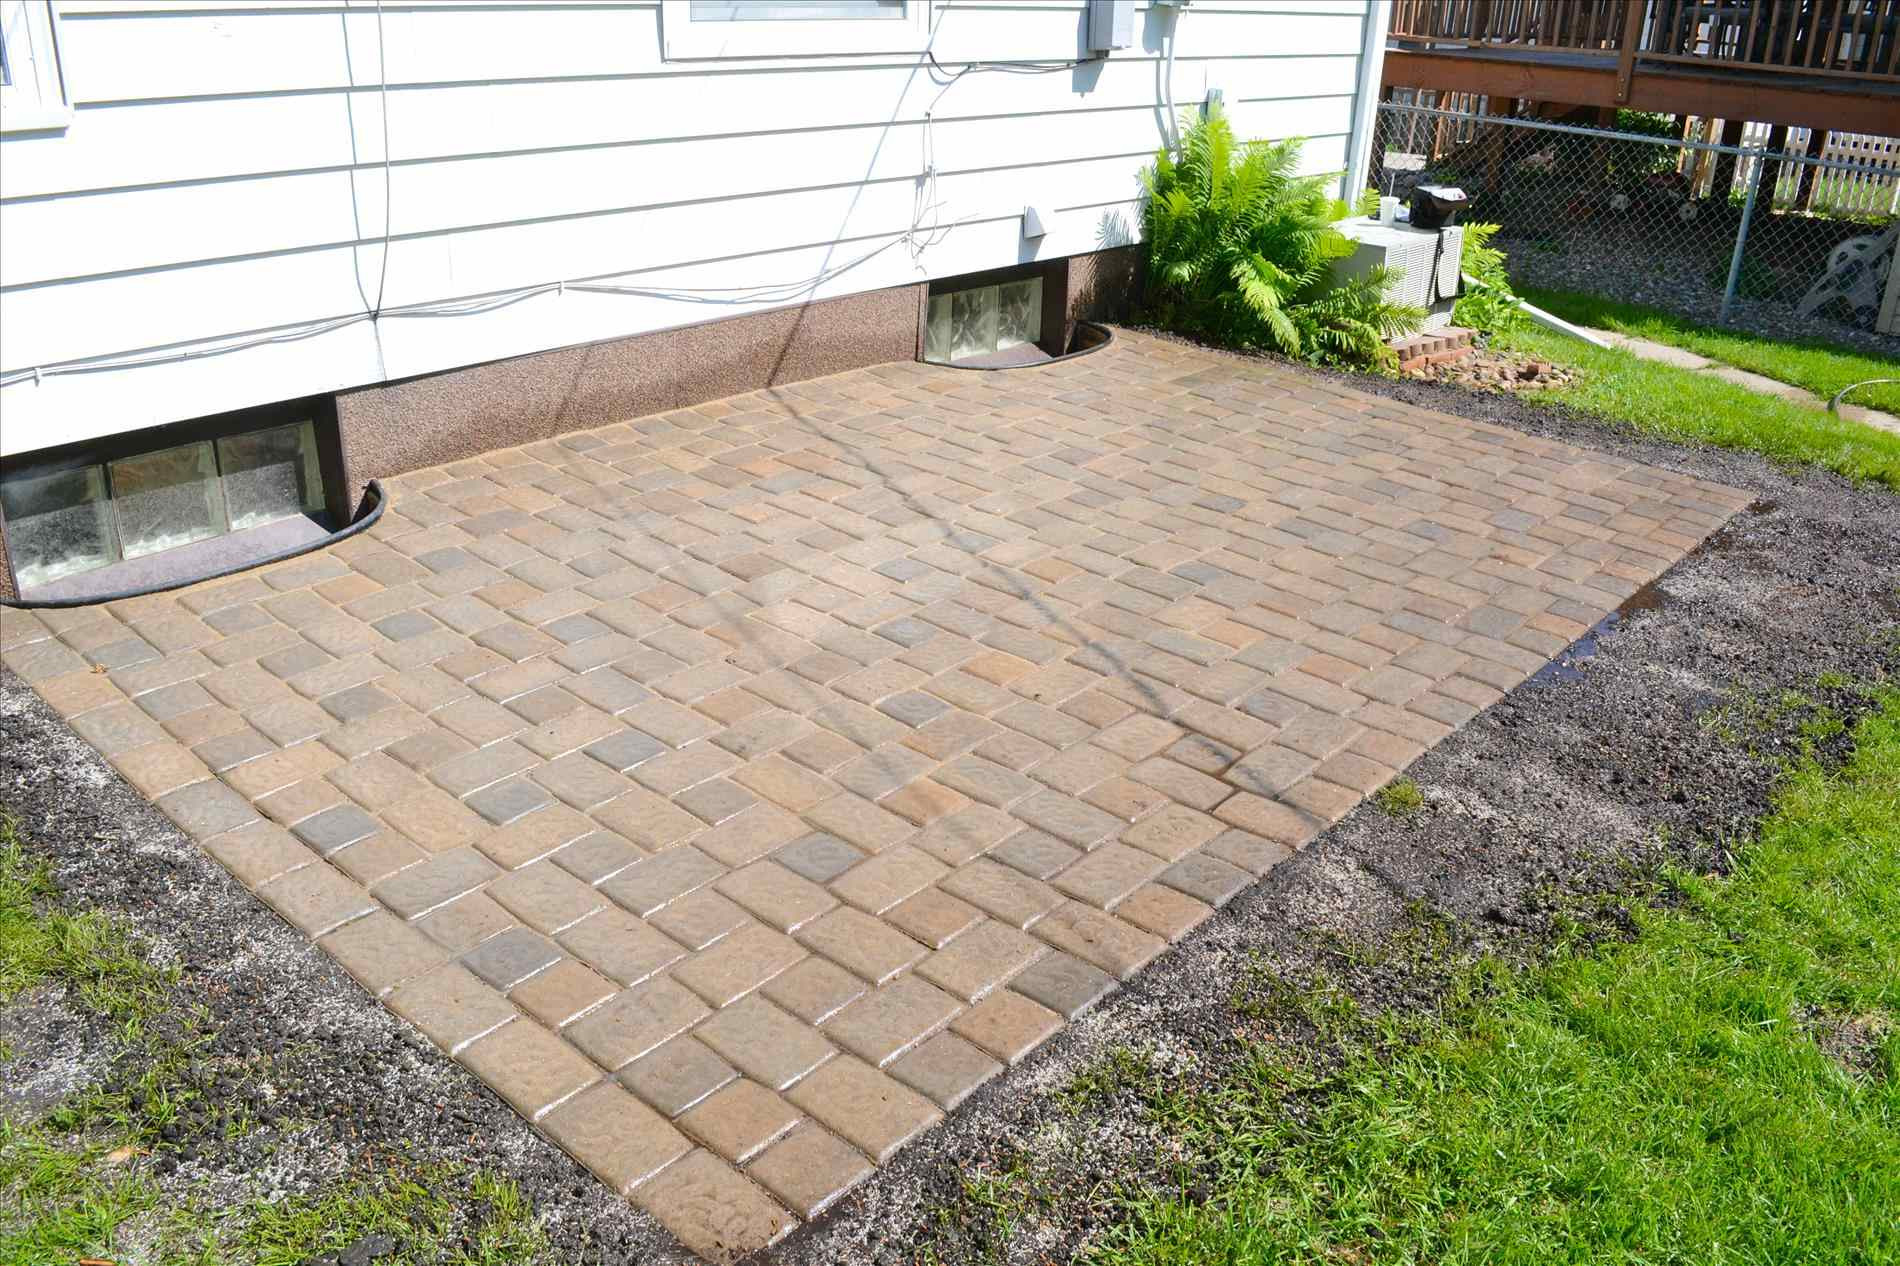 Best ideas about Patio Pavers Lowes . Save or Pin 24x24 Concrete Pavers Lowes Home Depot Patio Blocks Now.